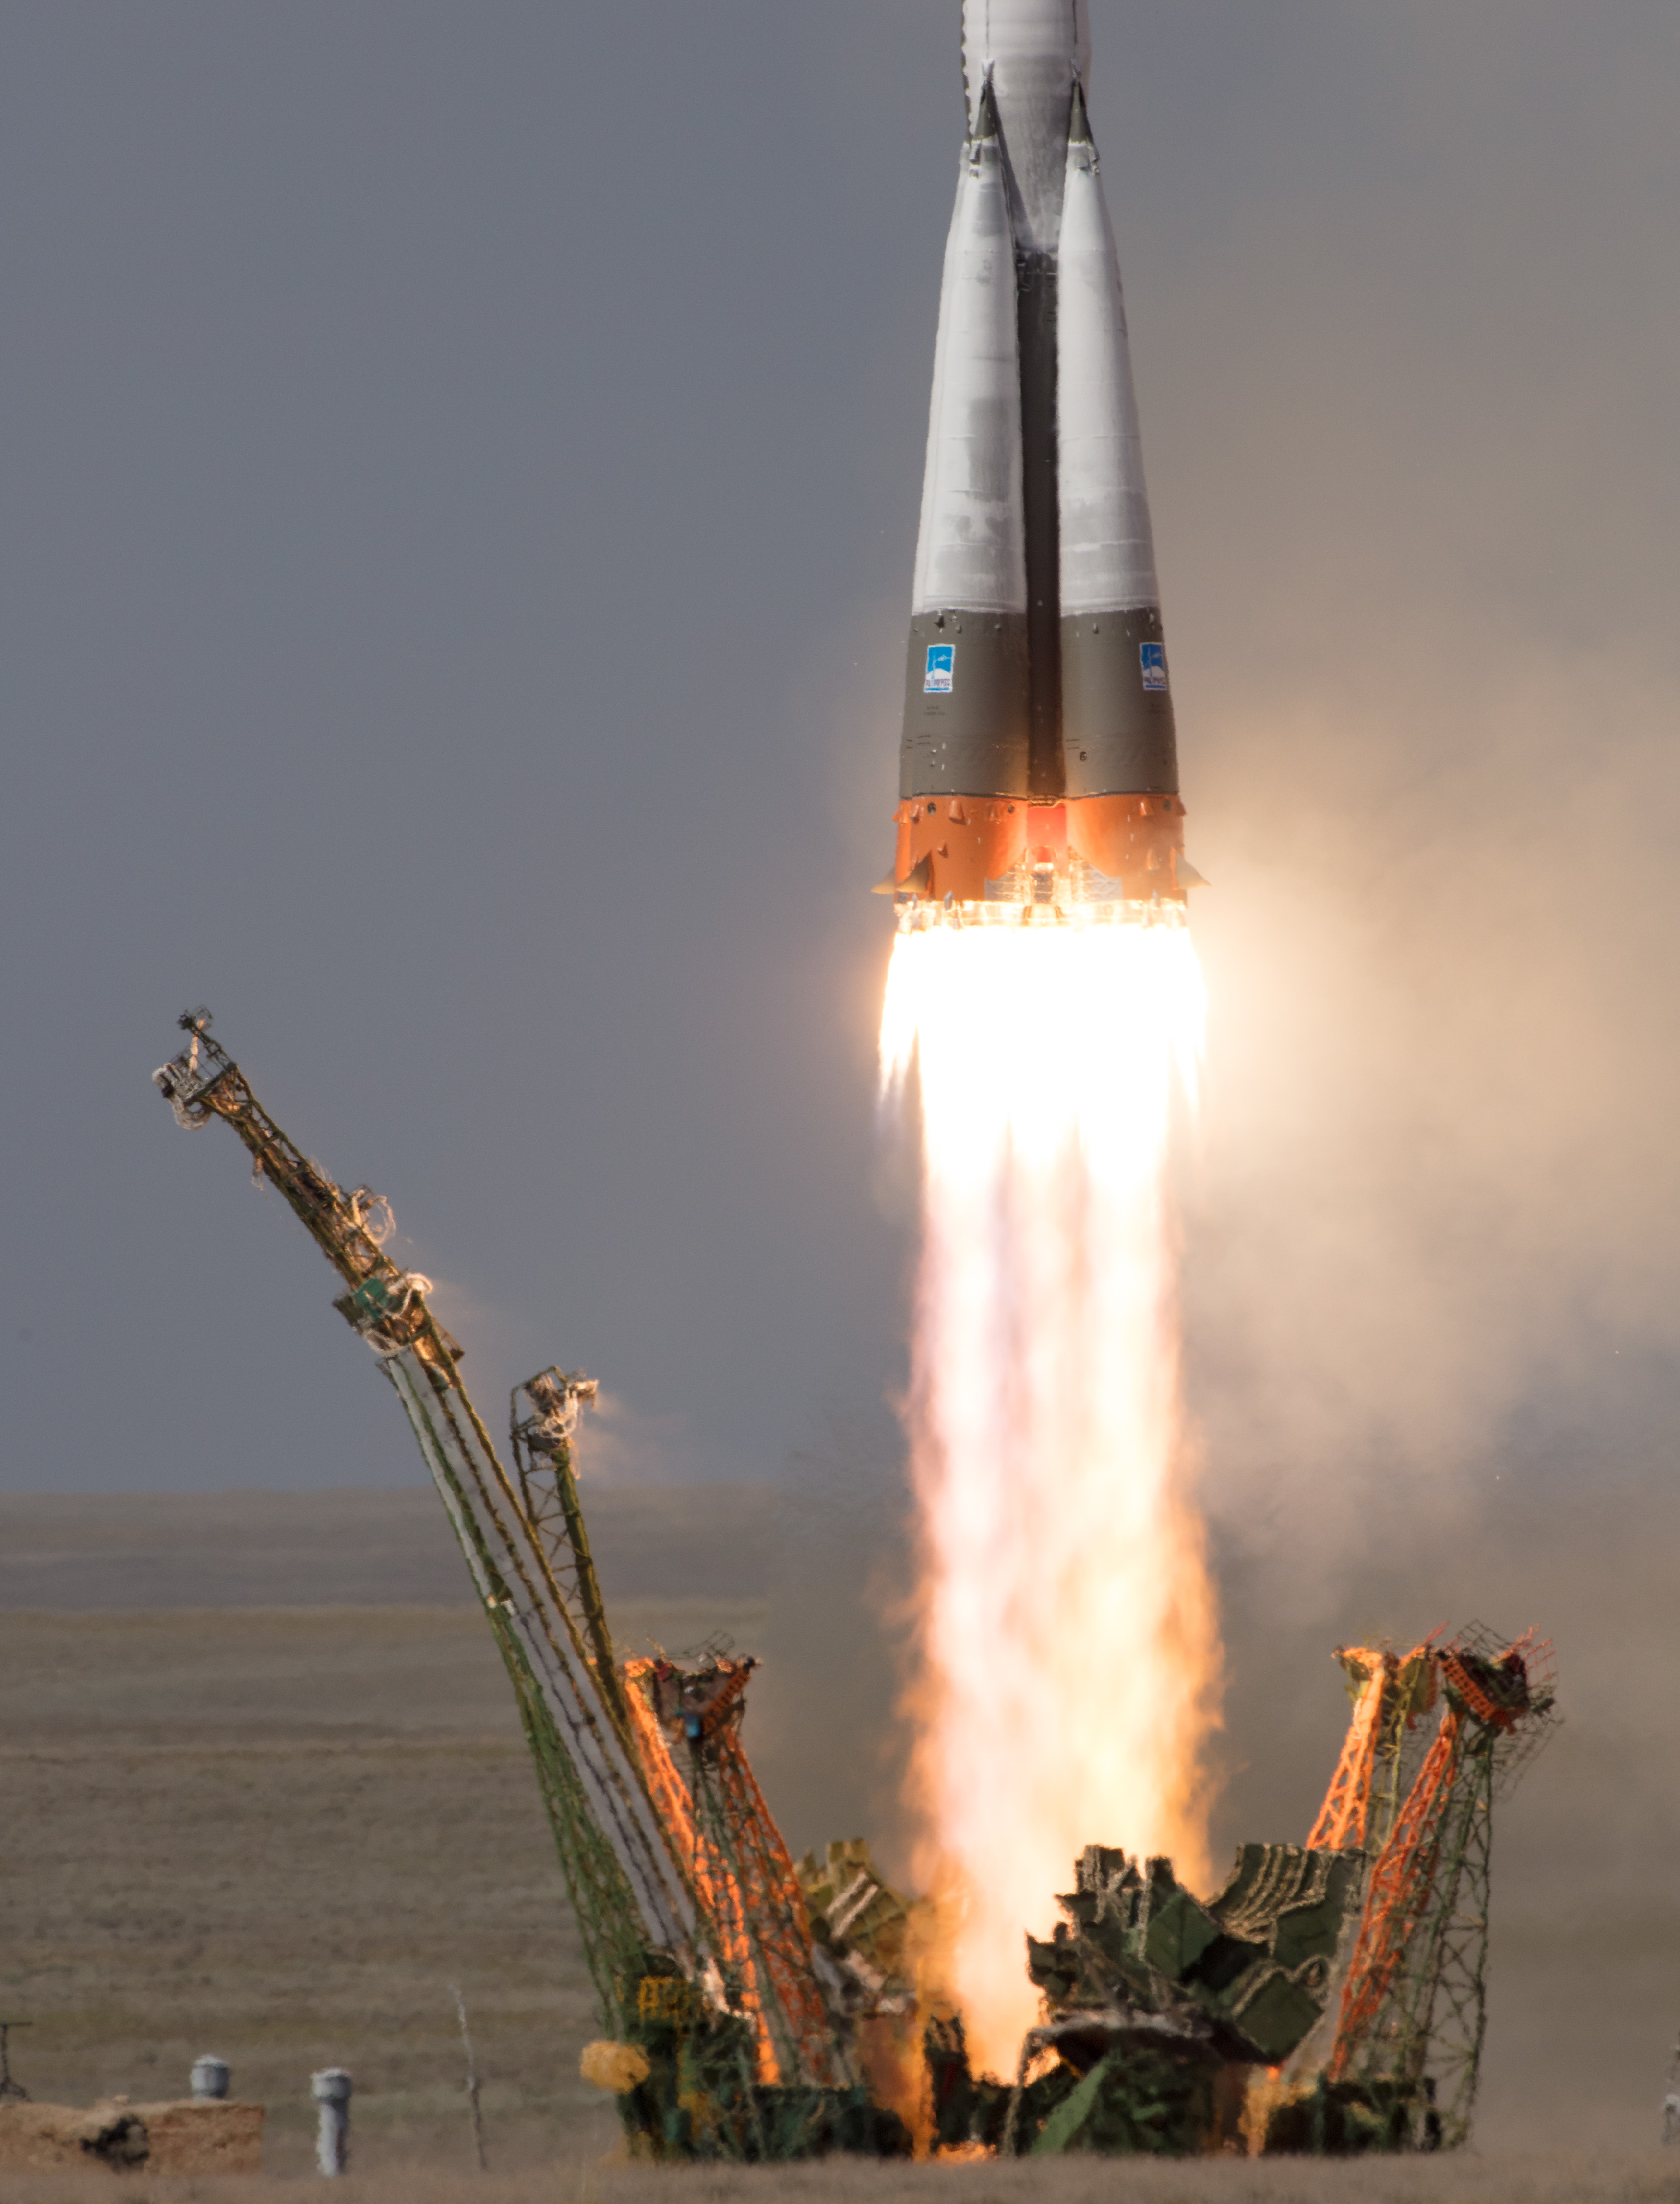 Soyuz Lifts Off to Bring New Crew to Space Station | NASA